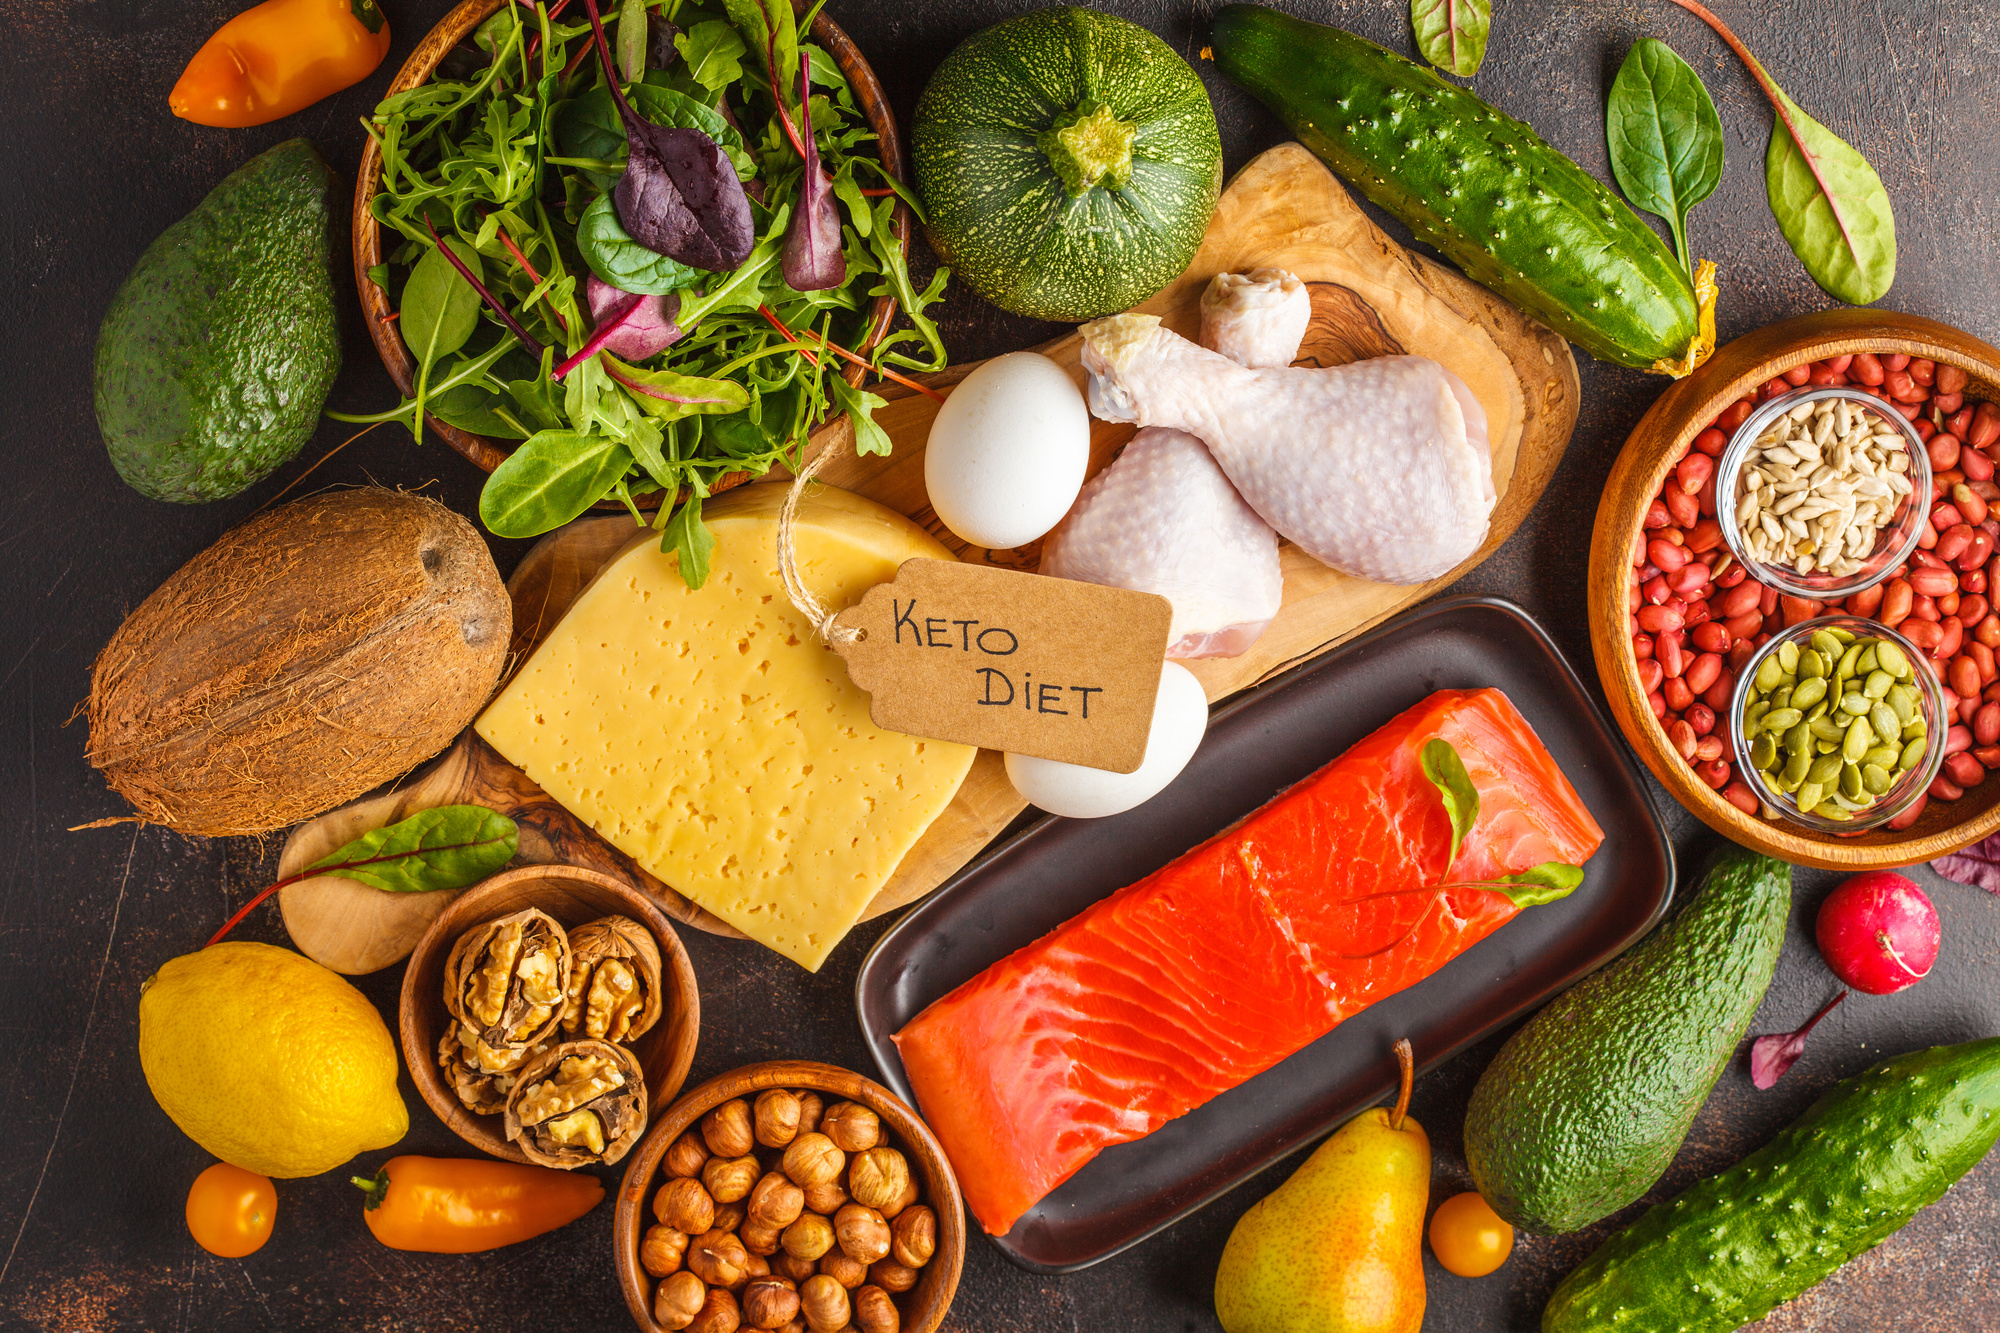 foods in ketogenic diet